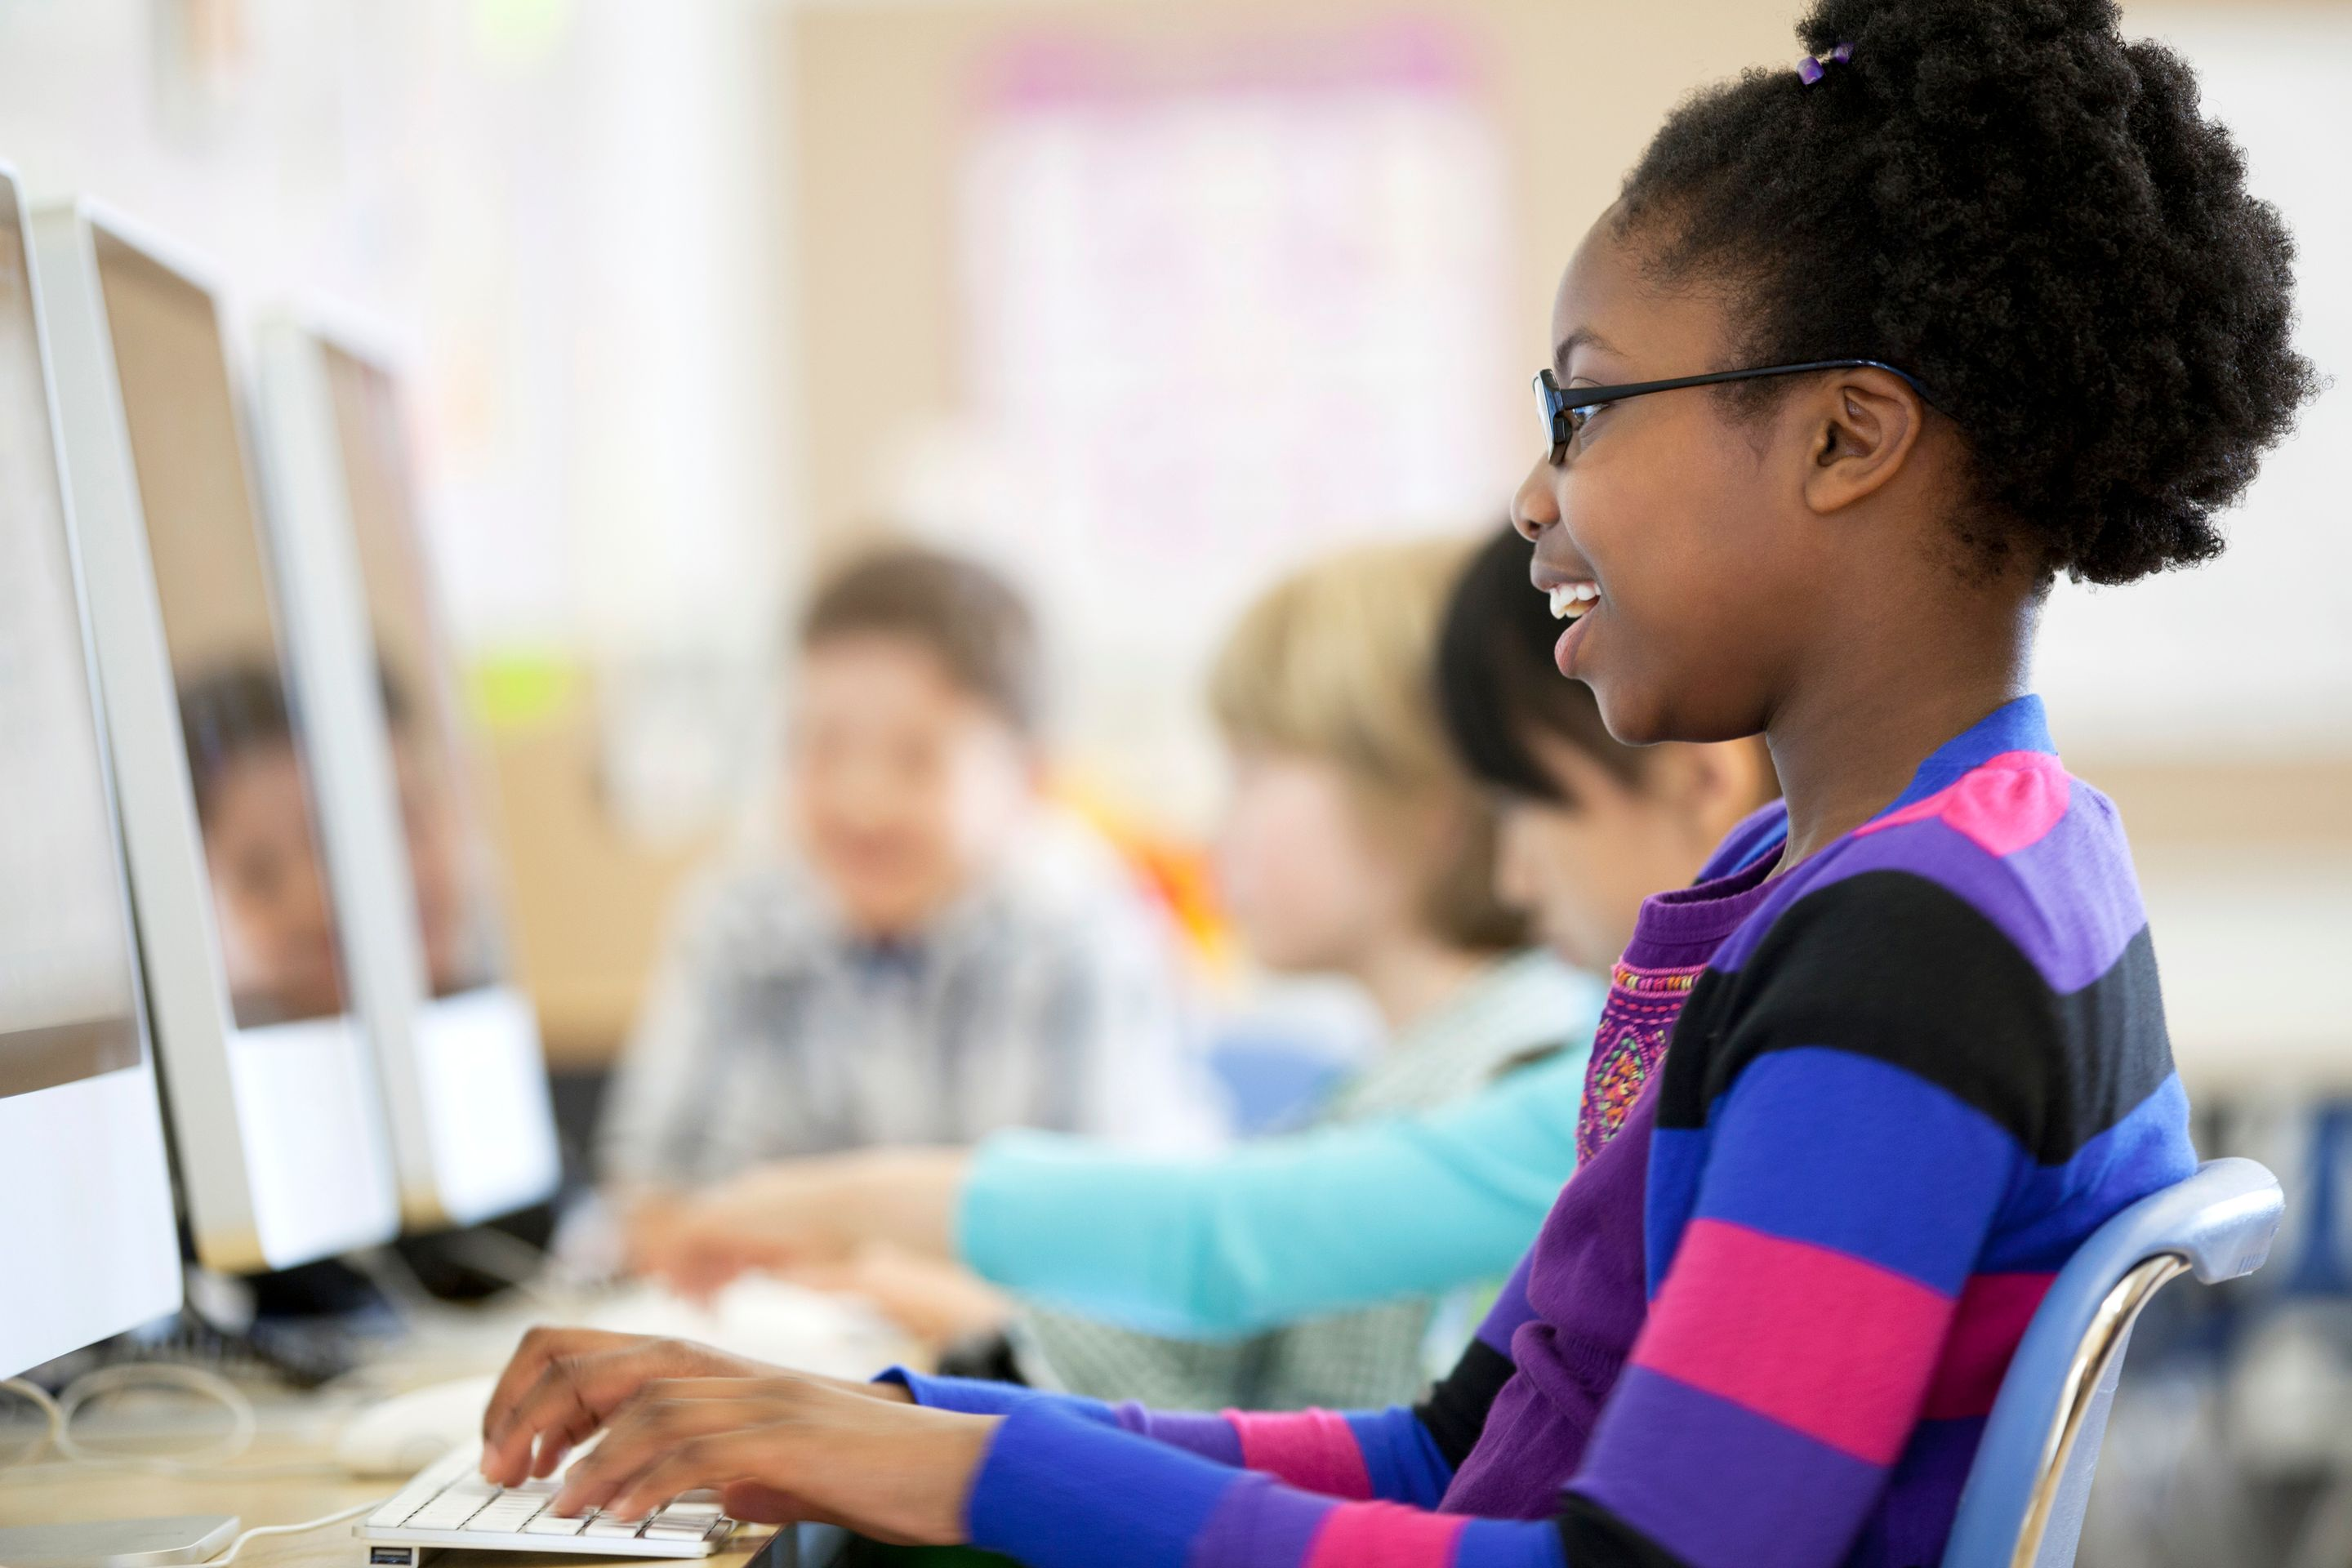 Young African American girl smiling while typing on computer keyboard.